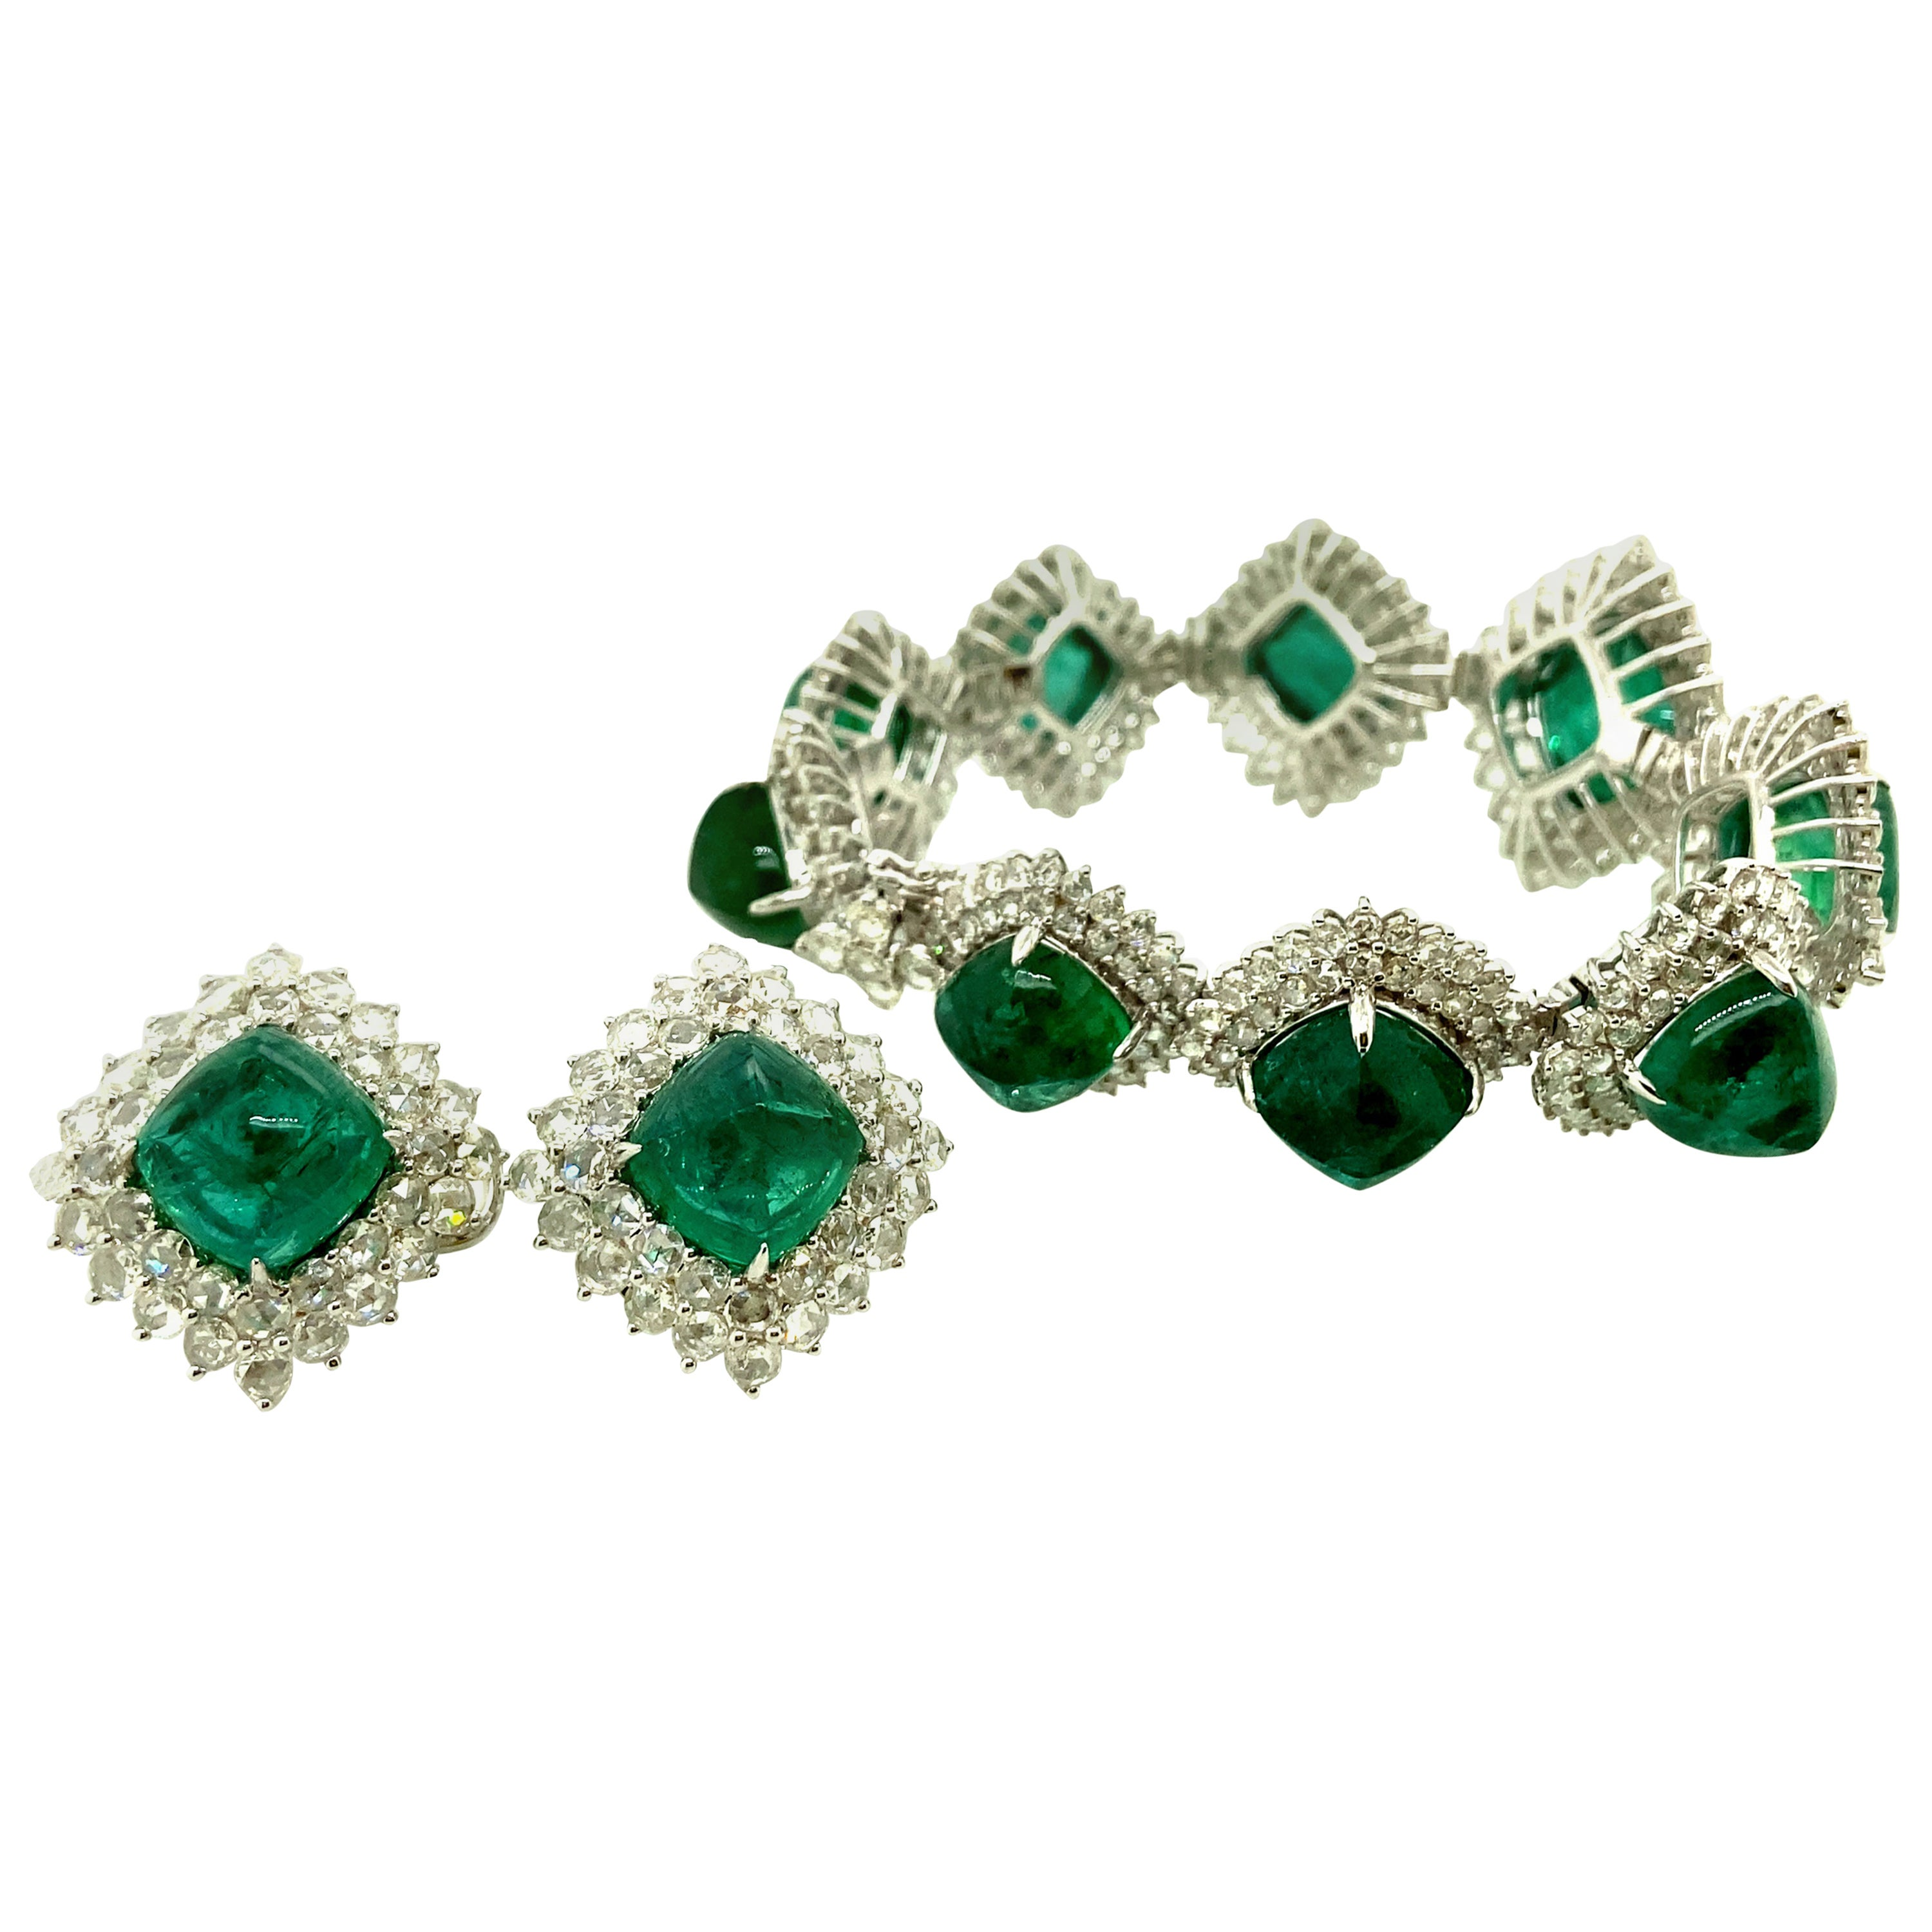 108.74 Carat Emerald Sugarloaf and White Diamond Gold Bracelet and Earrings Set